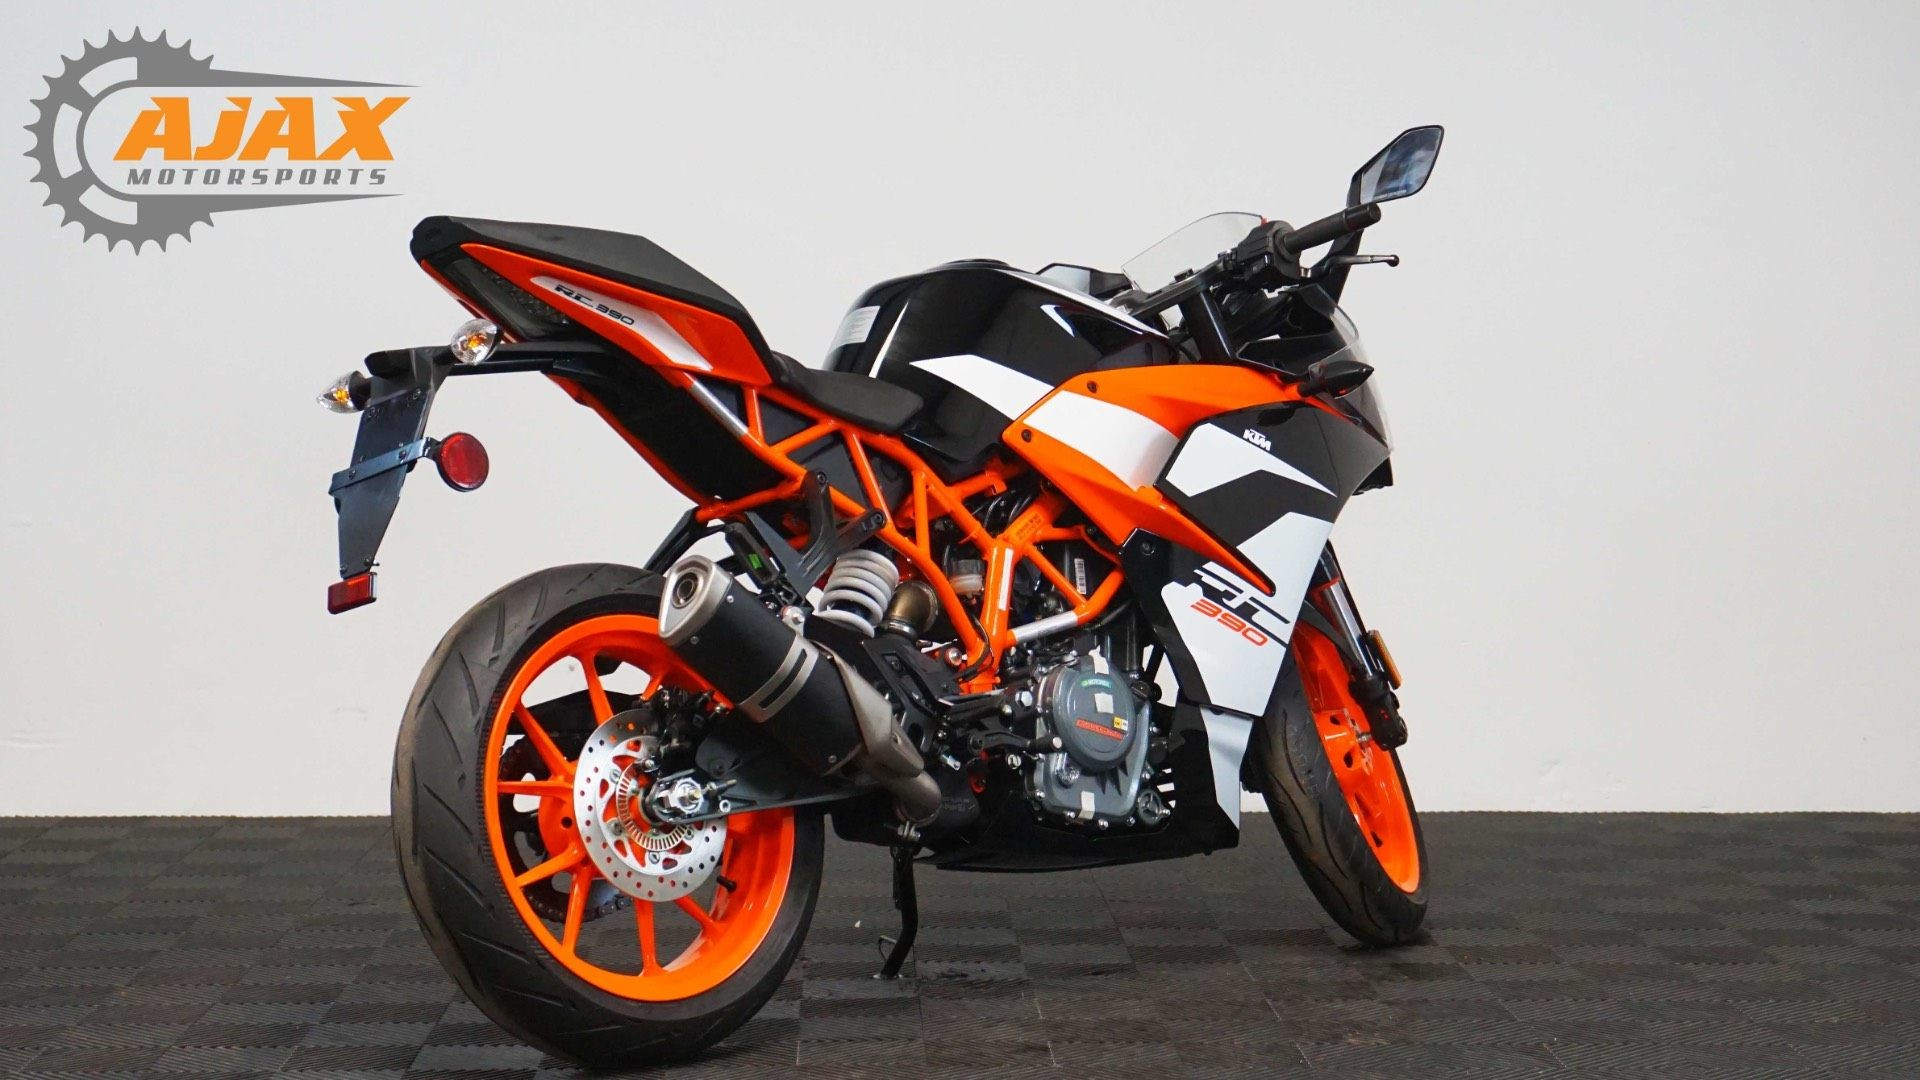 2017 Ktm Rc 390 In Oklahoma City Oklahoma Data Src Ktm Rc 390 2018 1920x1080 Wallpaper Teahub Io